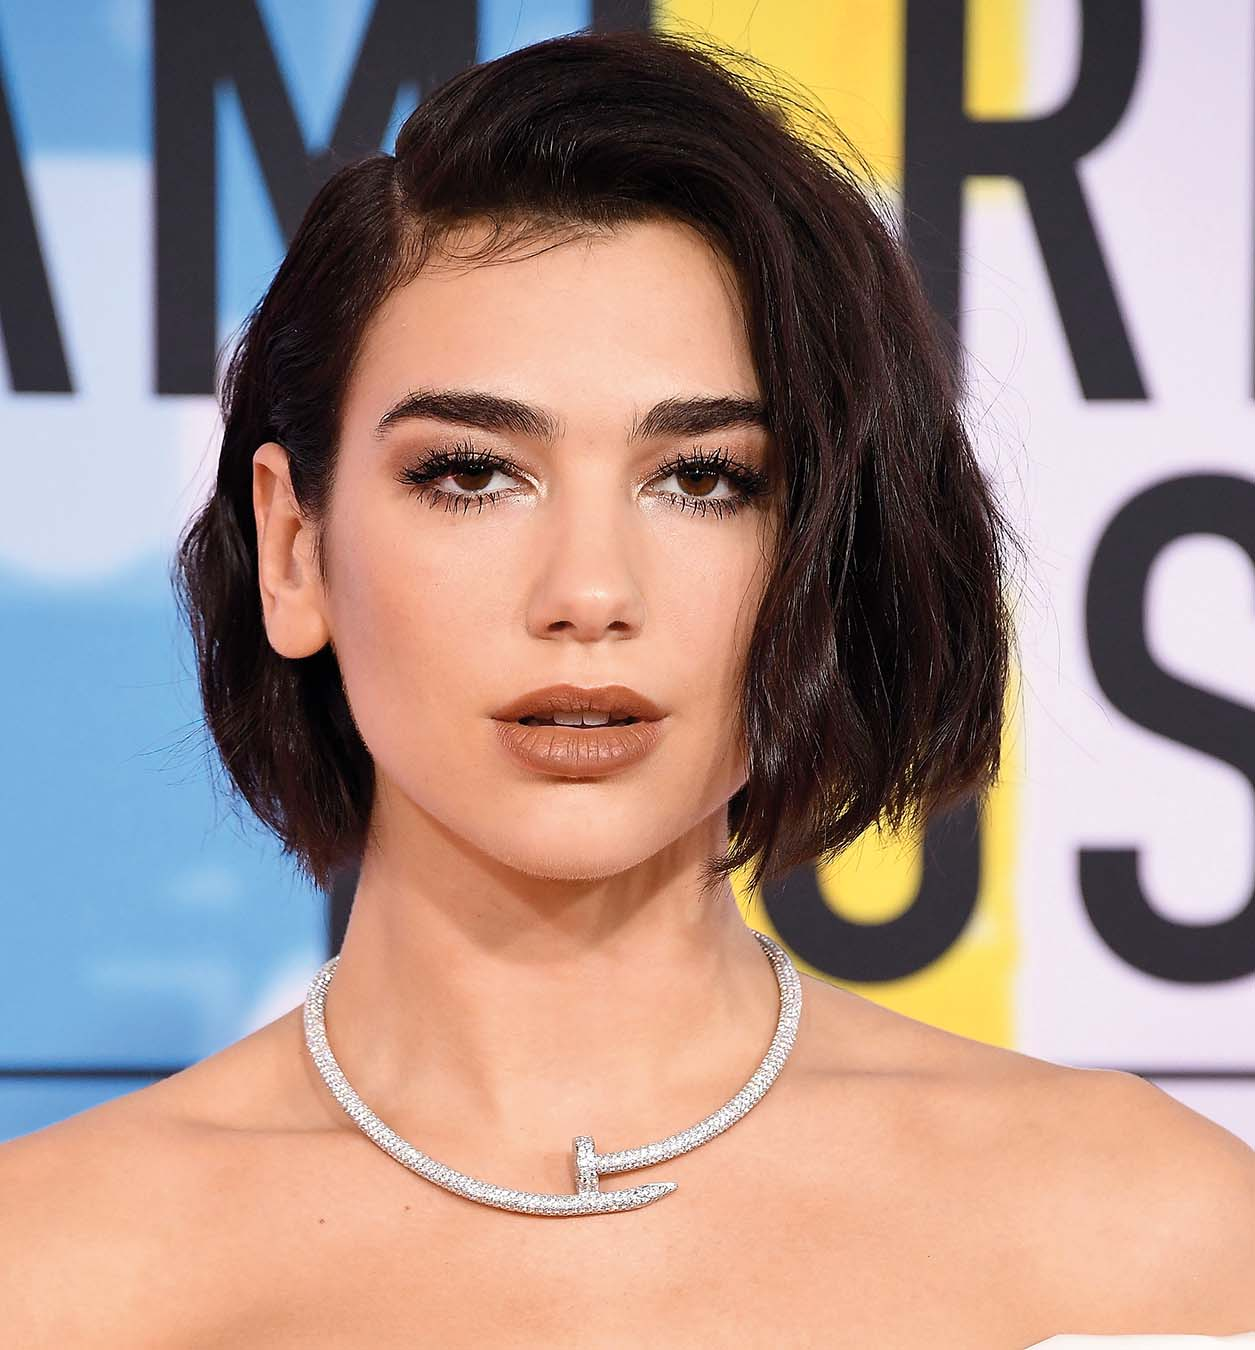 LOS ANGELES, CA - OCTOBER 09:  Dua Lipa arrives at the 2018 American Music Awards at Microsoft Theater on October 9, 2018 in Los Angeles, California.  (Photo by Steve Granitz/WireImage)